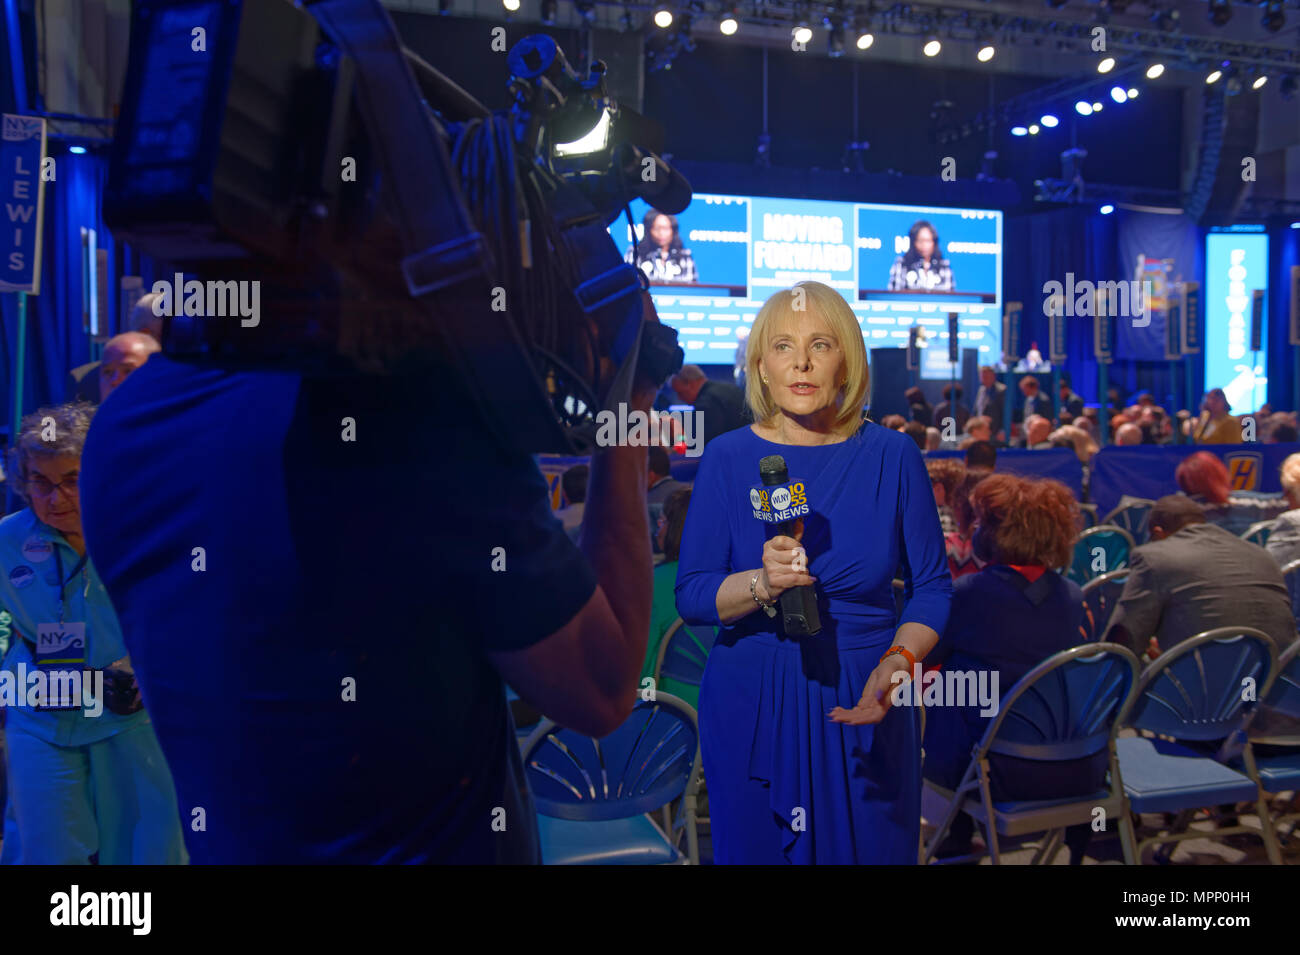 Long Island, USA. 23rd May, 2018. MARCIA KRAMER, WLNY 10/55 Political Reporter, tapes news segment with audience and stage in background during Day 1 of New York State Democratic Convention, held at Hofstra University on Long Island. Credit: Ann E Parry/Alamy Live News Stock Photo